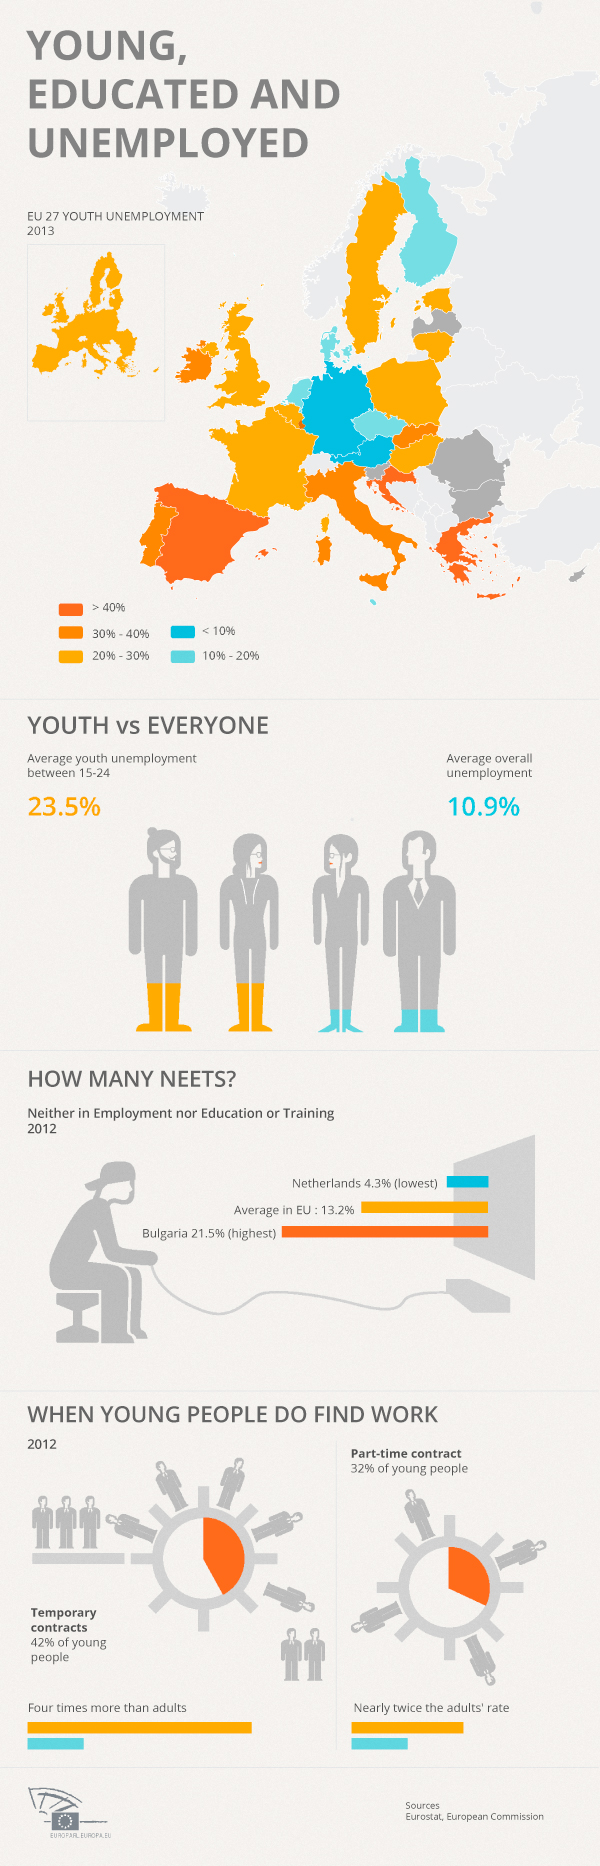 Infographic: Youth Unemployment in the EU